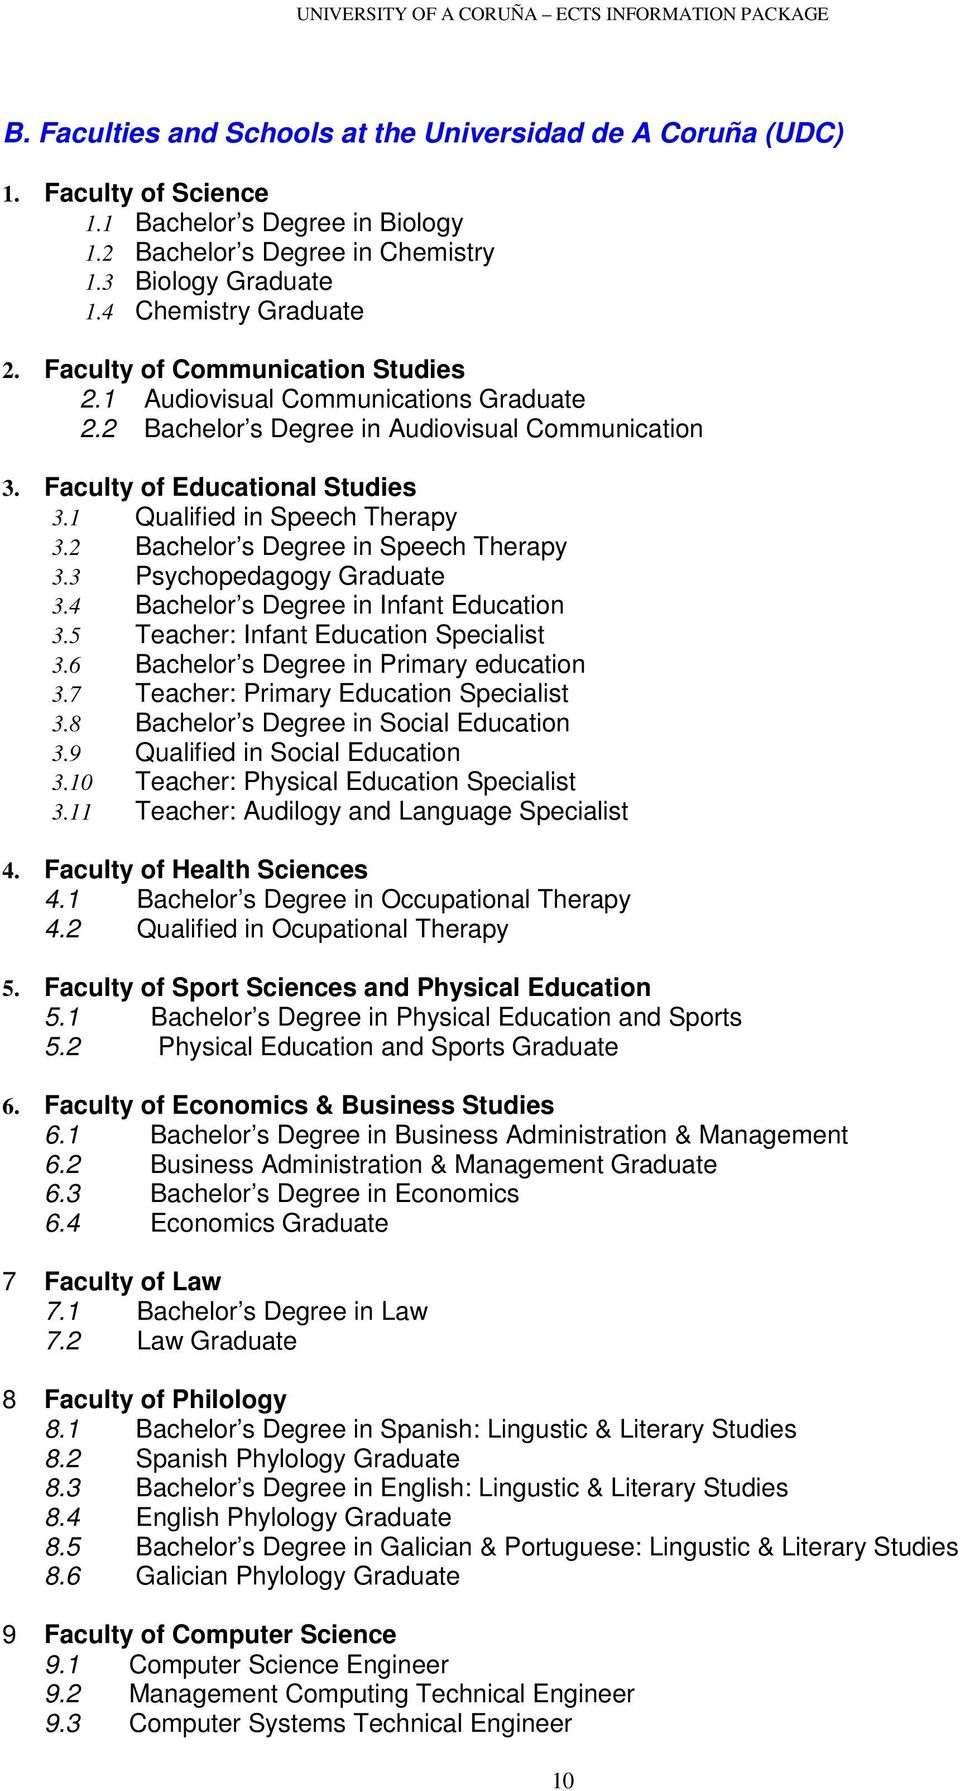 2 Bachelor s Degree in Speech Therapy 3.3 Psychopedagogy Graduate 3.4 Bachelor s Degree in Infant Education 3.5 Teacher: Infant Education Specialist 3.6 Bachelor s Degree in Primary education 3.